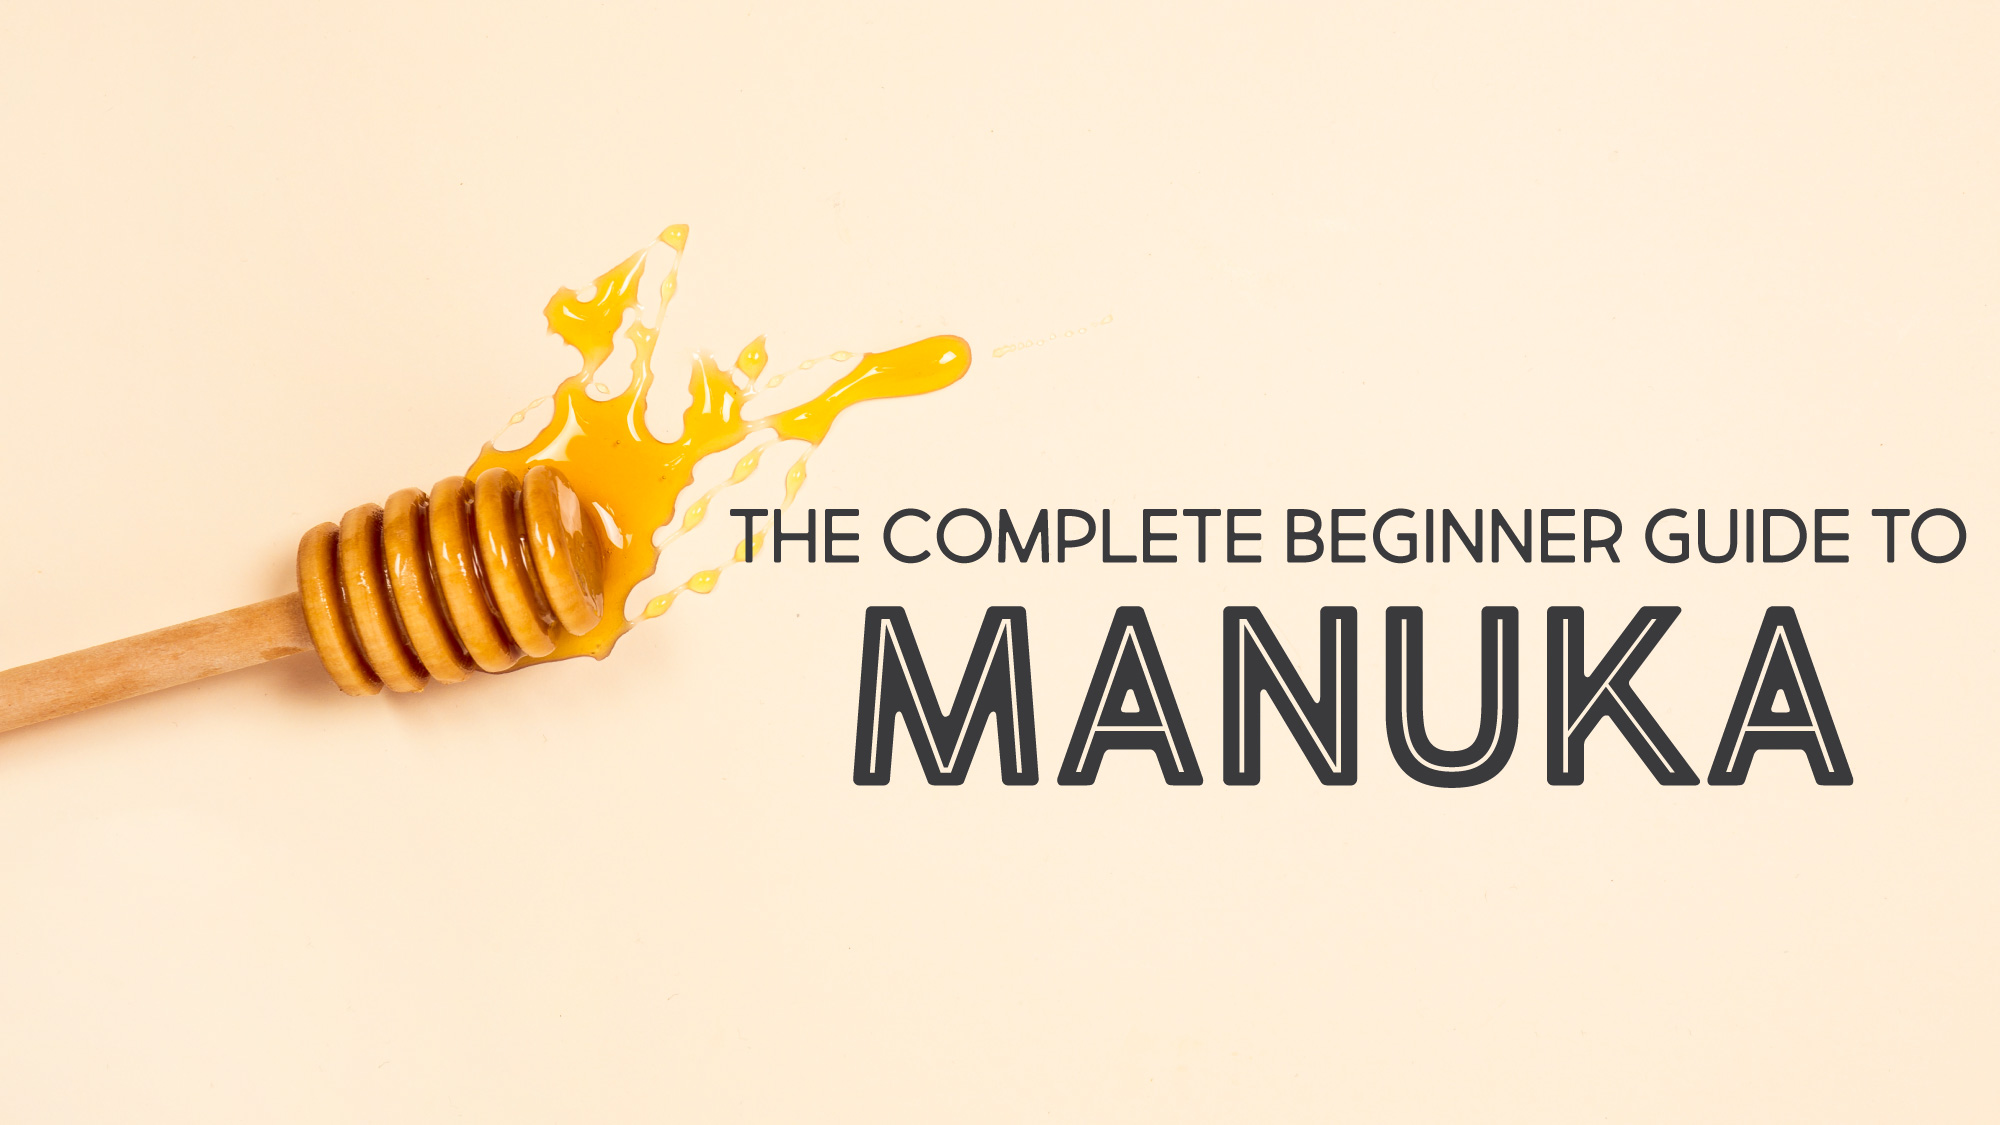 The Complete Beginner Guide To Manuka